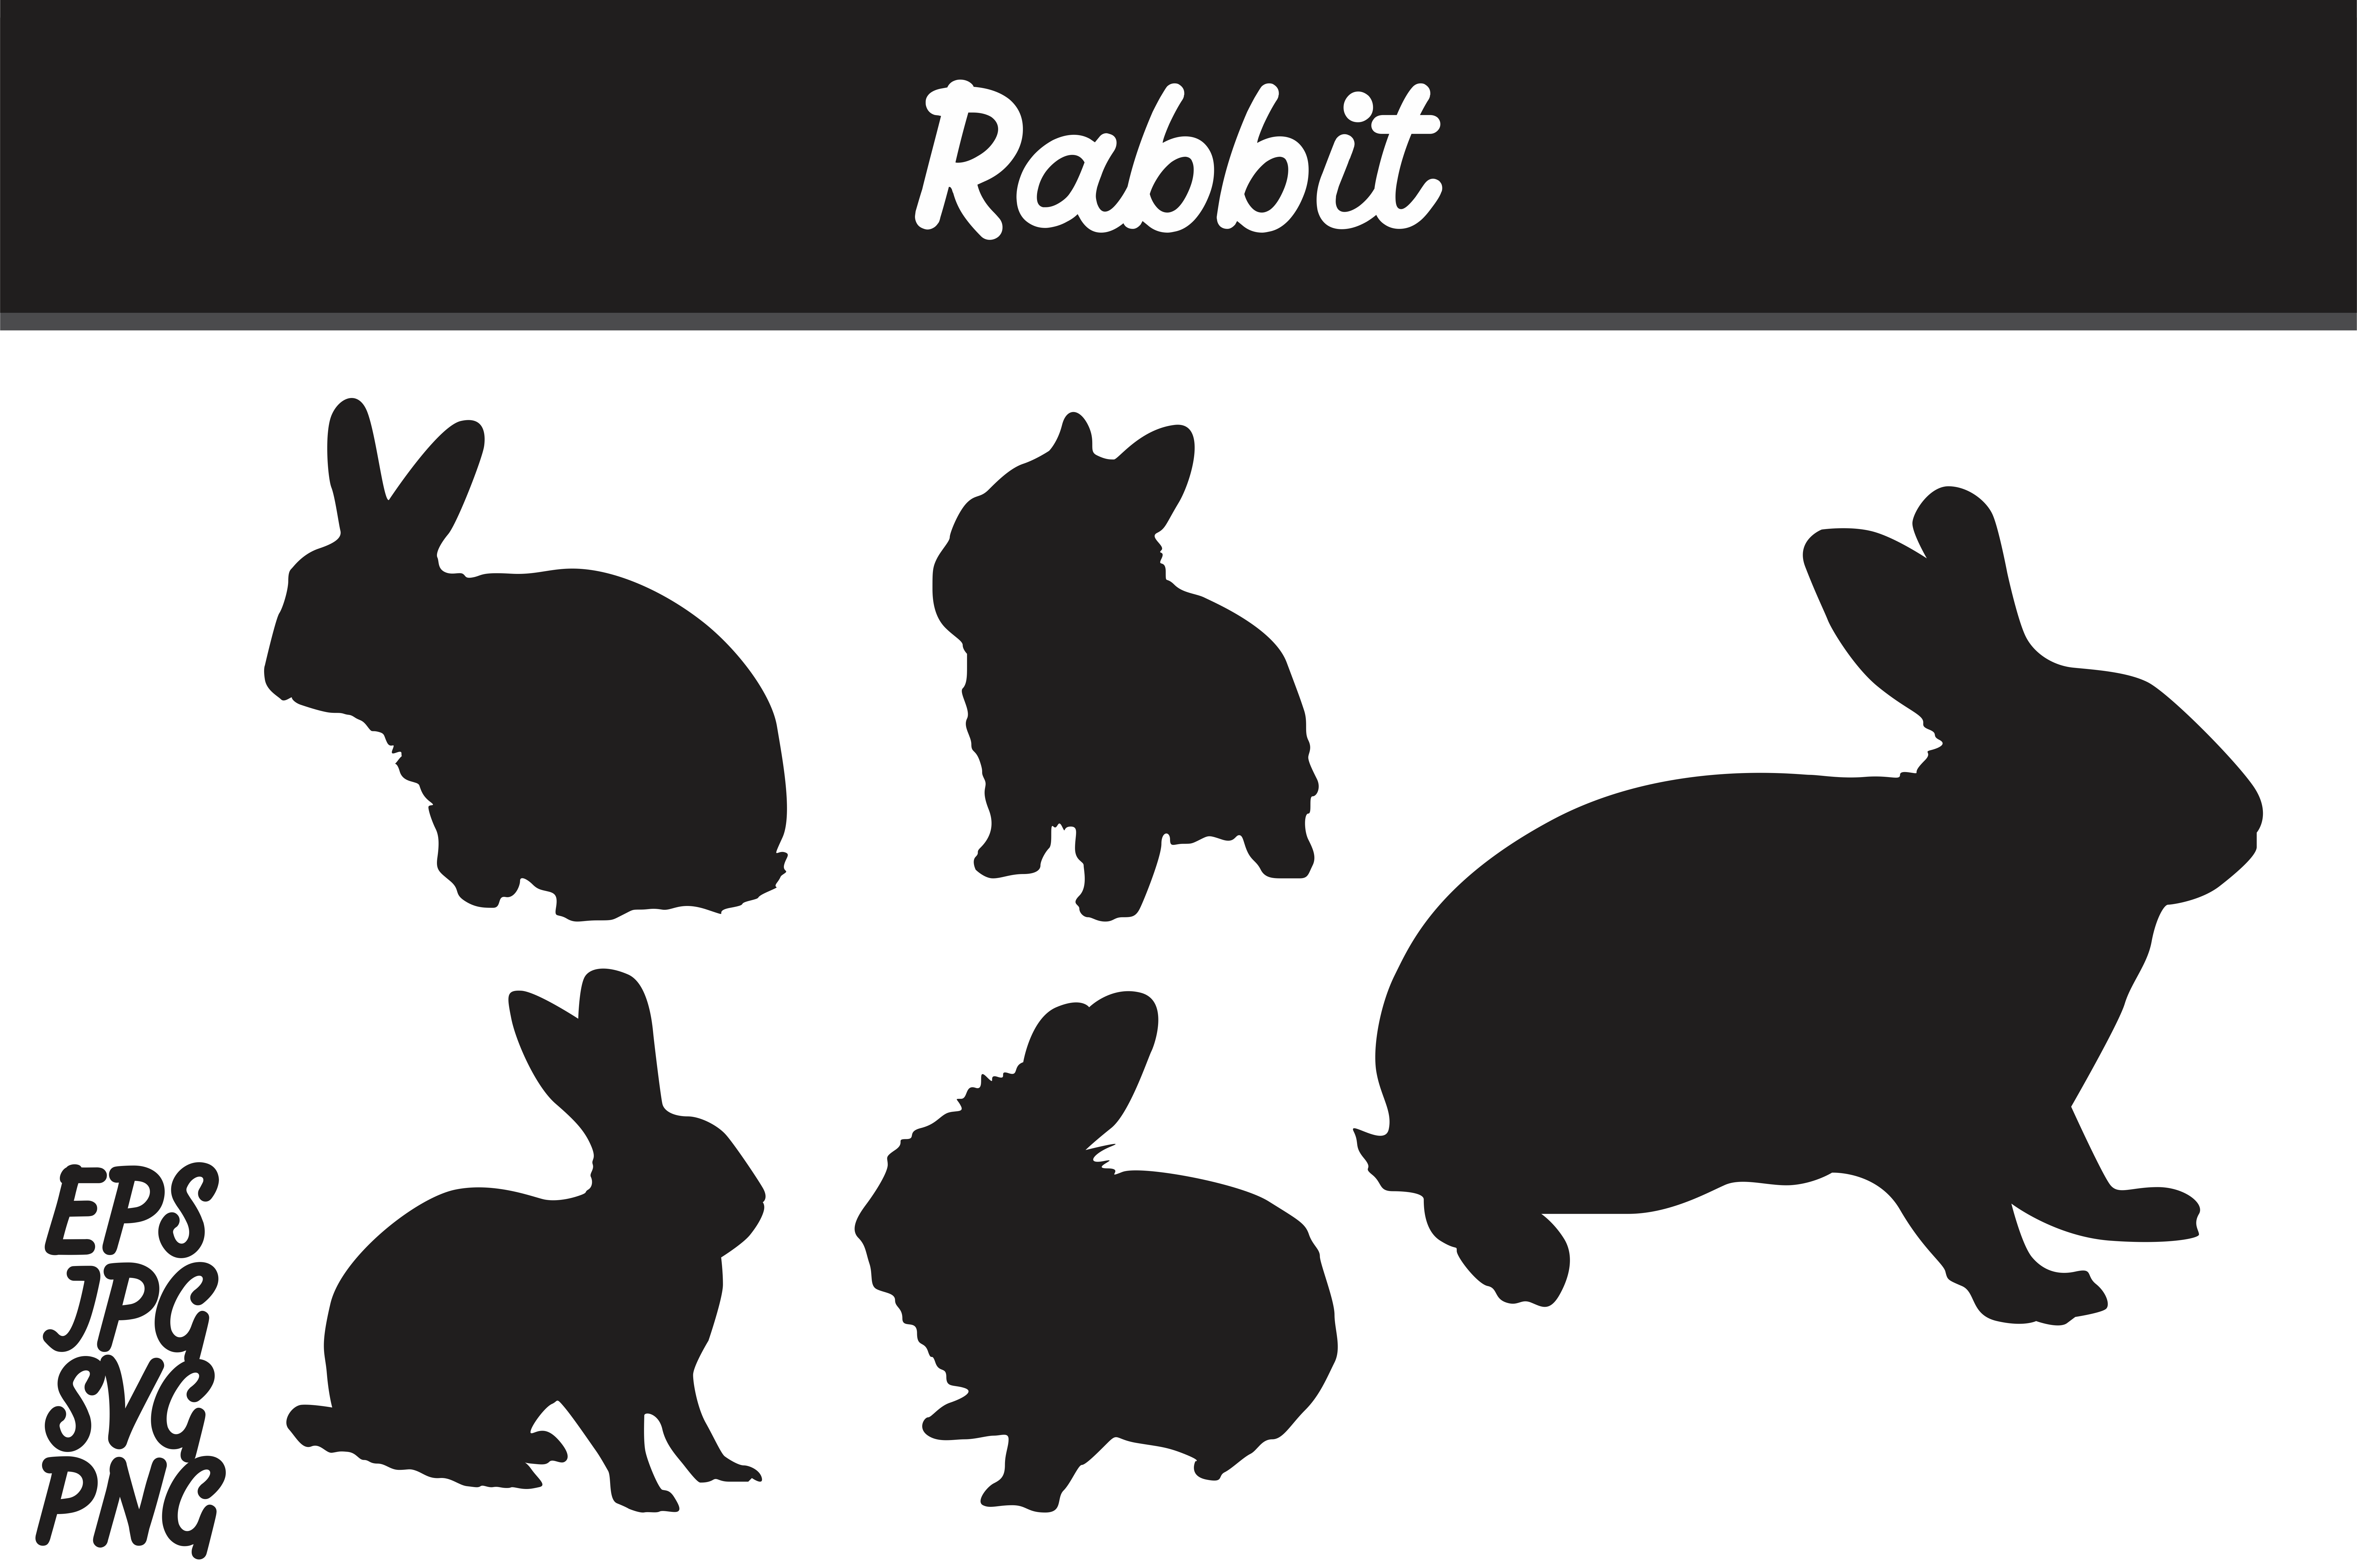 Download Free Rabbit Silhouette Set Svg Vector Image Bundle Grafico Por Arief for Cricut Explore, Silhouette and other cutting machines.